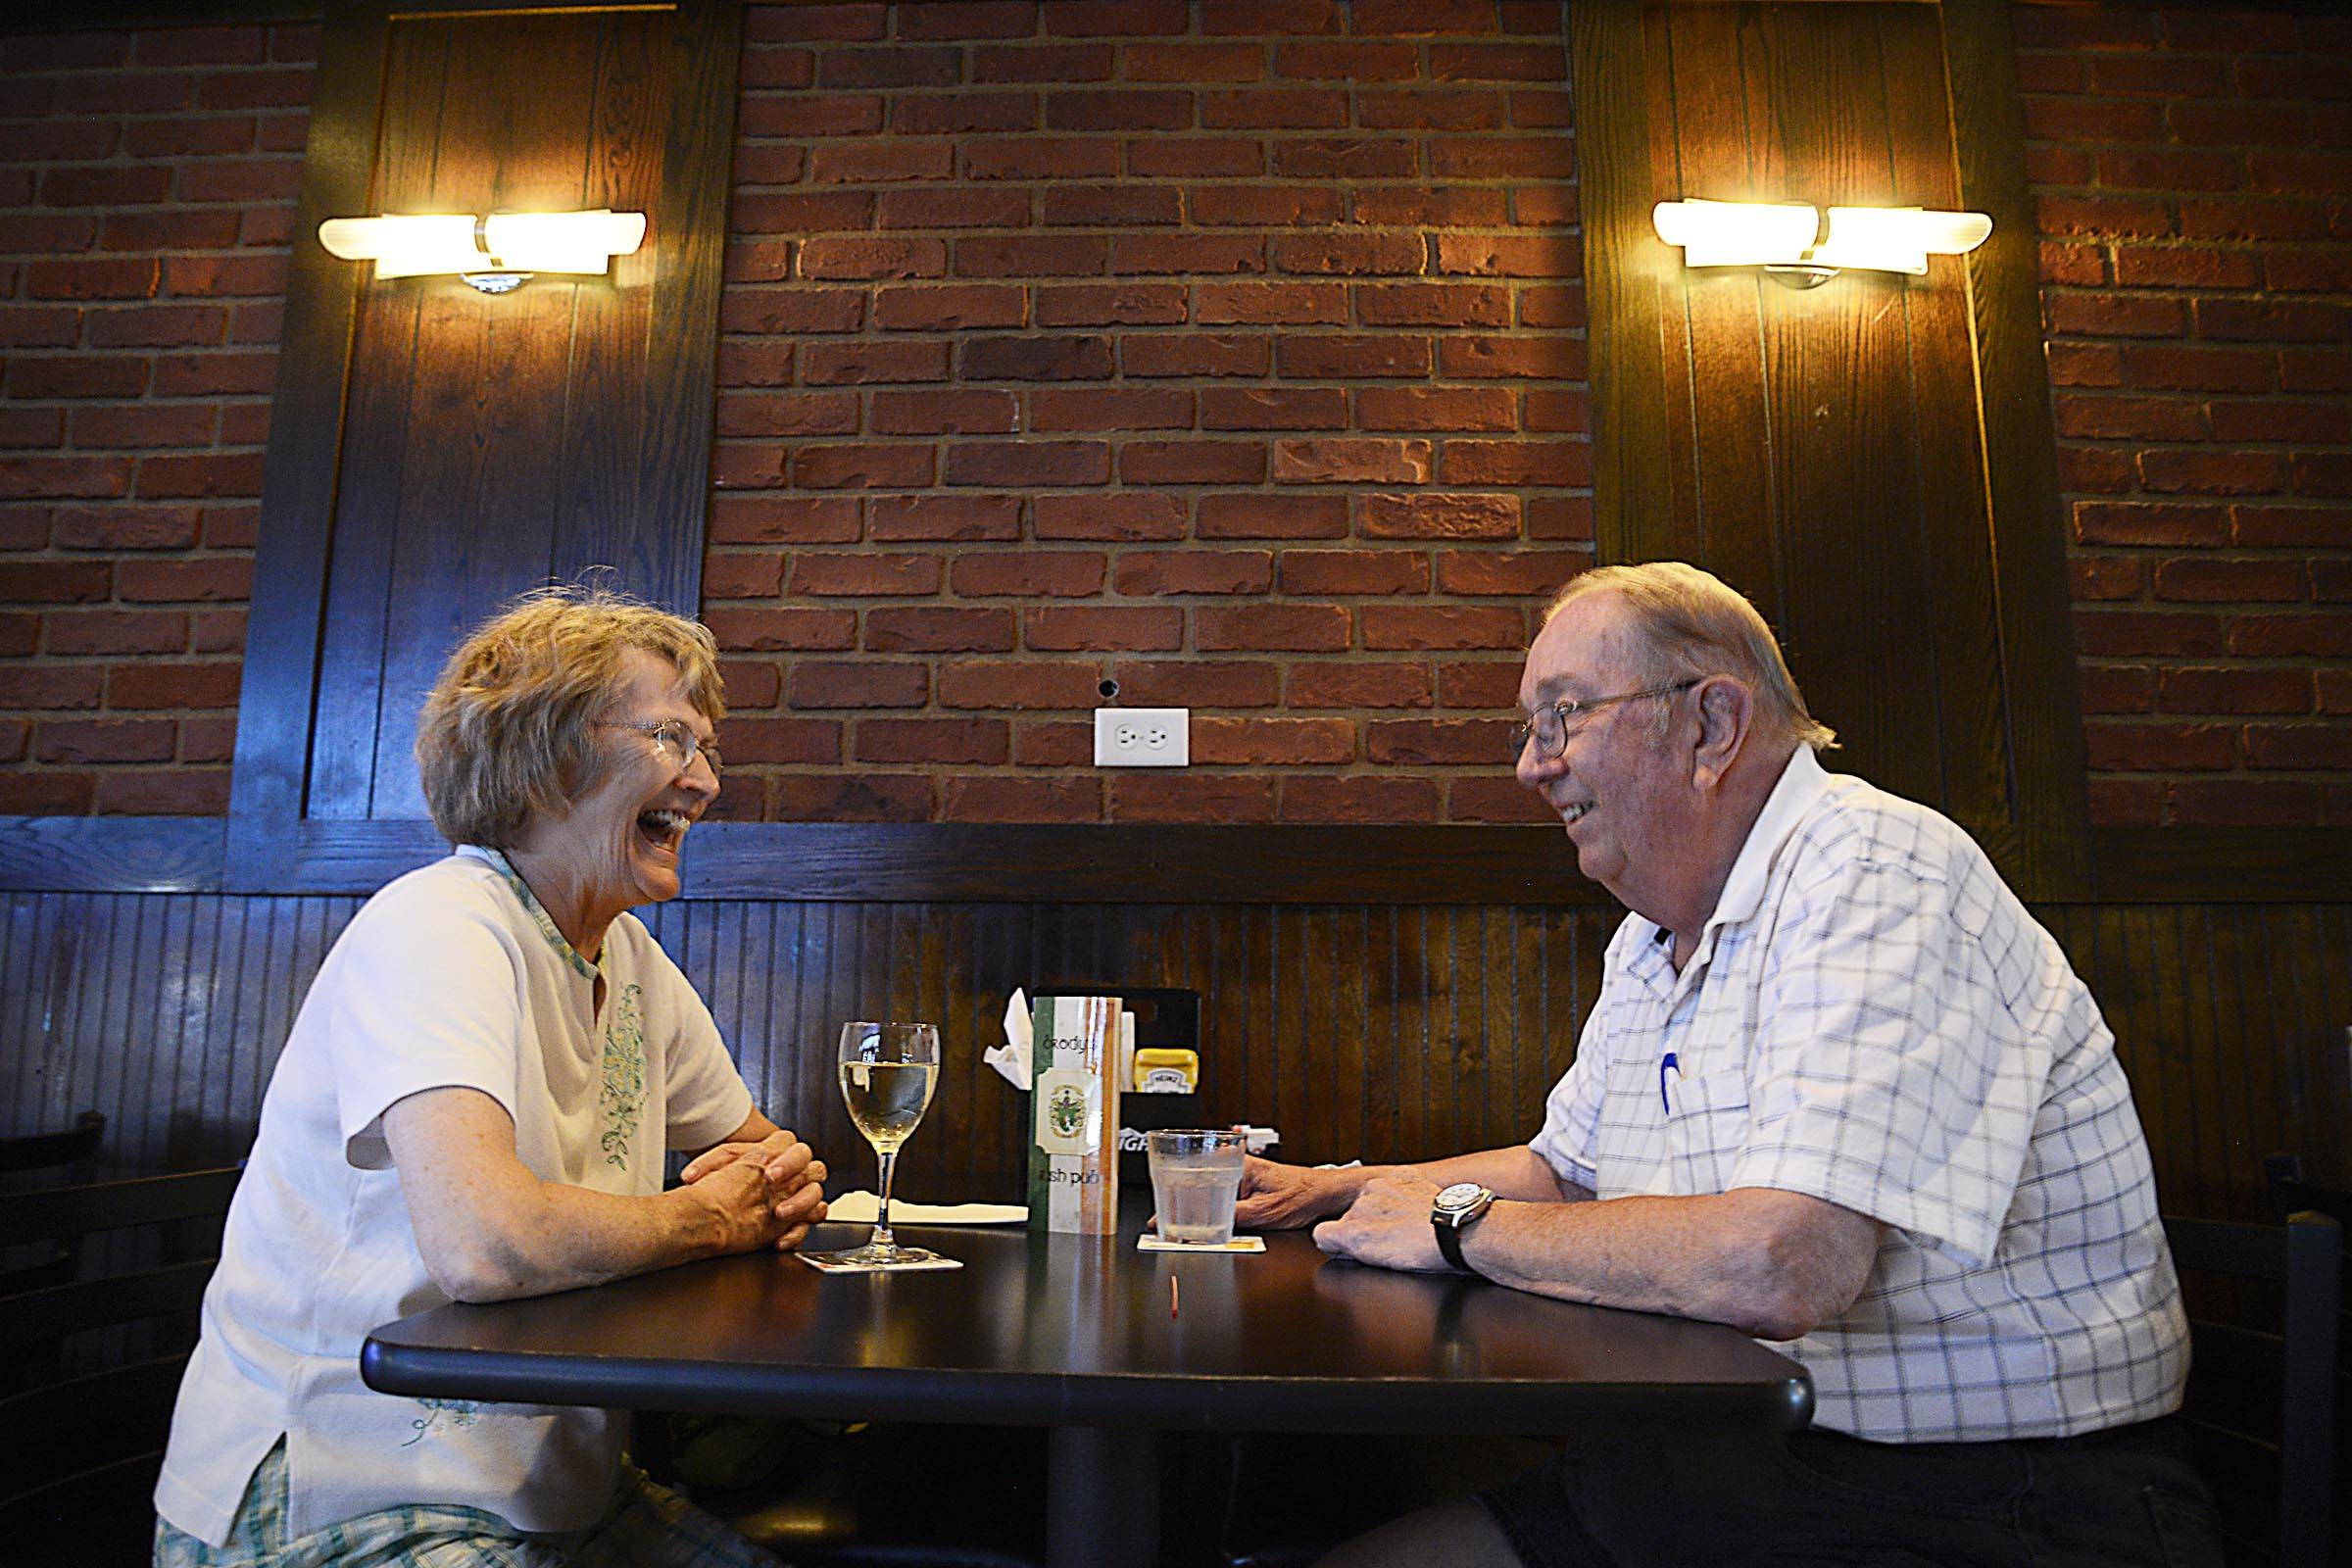 Chuck and Denese Thulin, of Aurora, enjoy a night out at Brody's Irish Pub in Aurora.